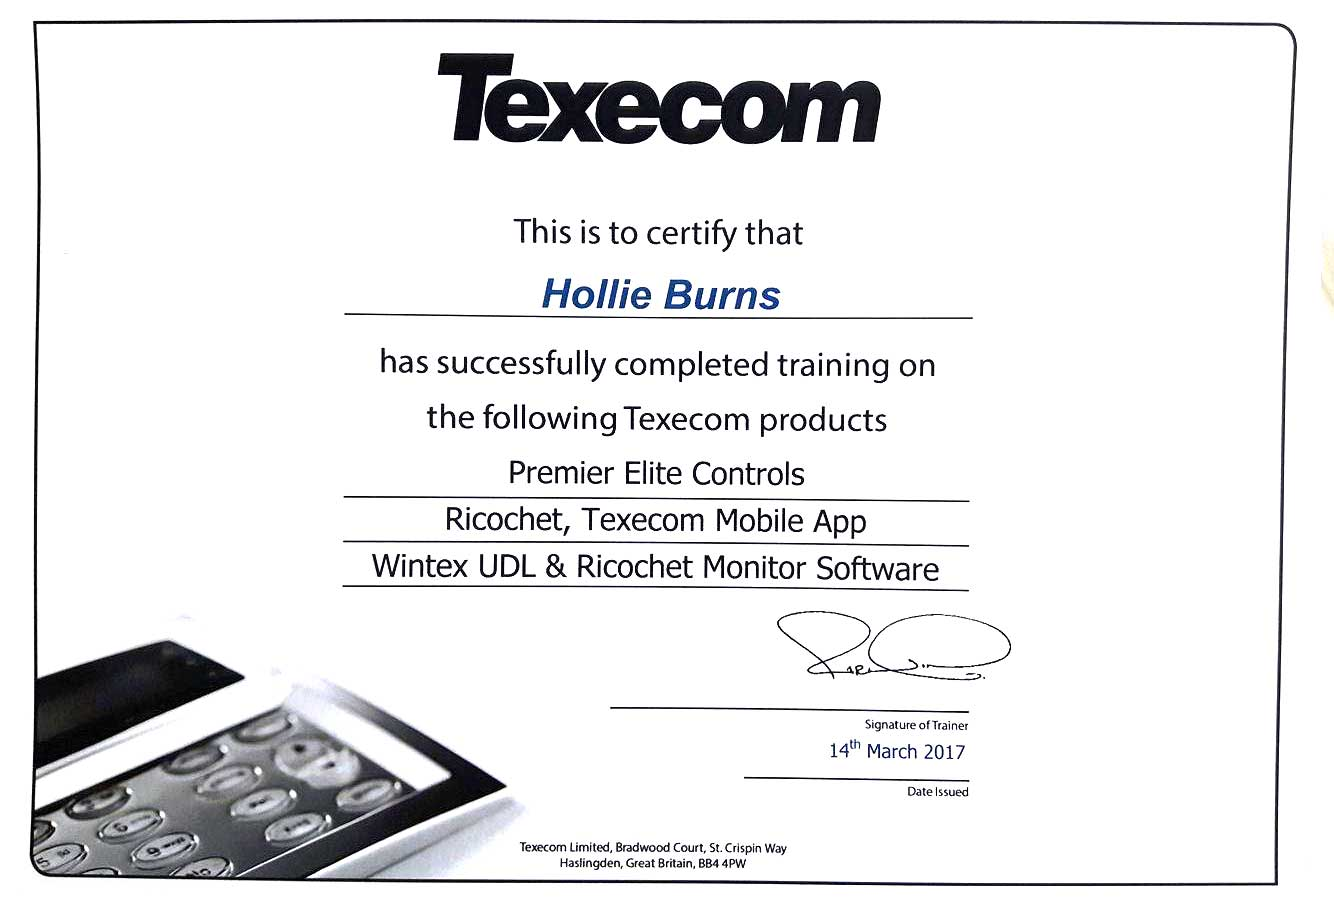 hollie-burns-certificate